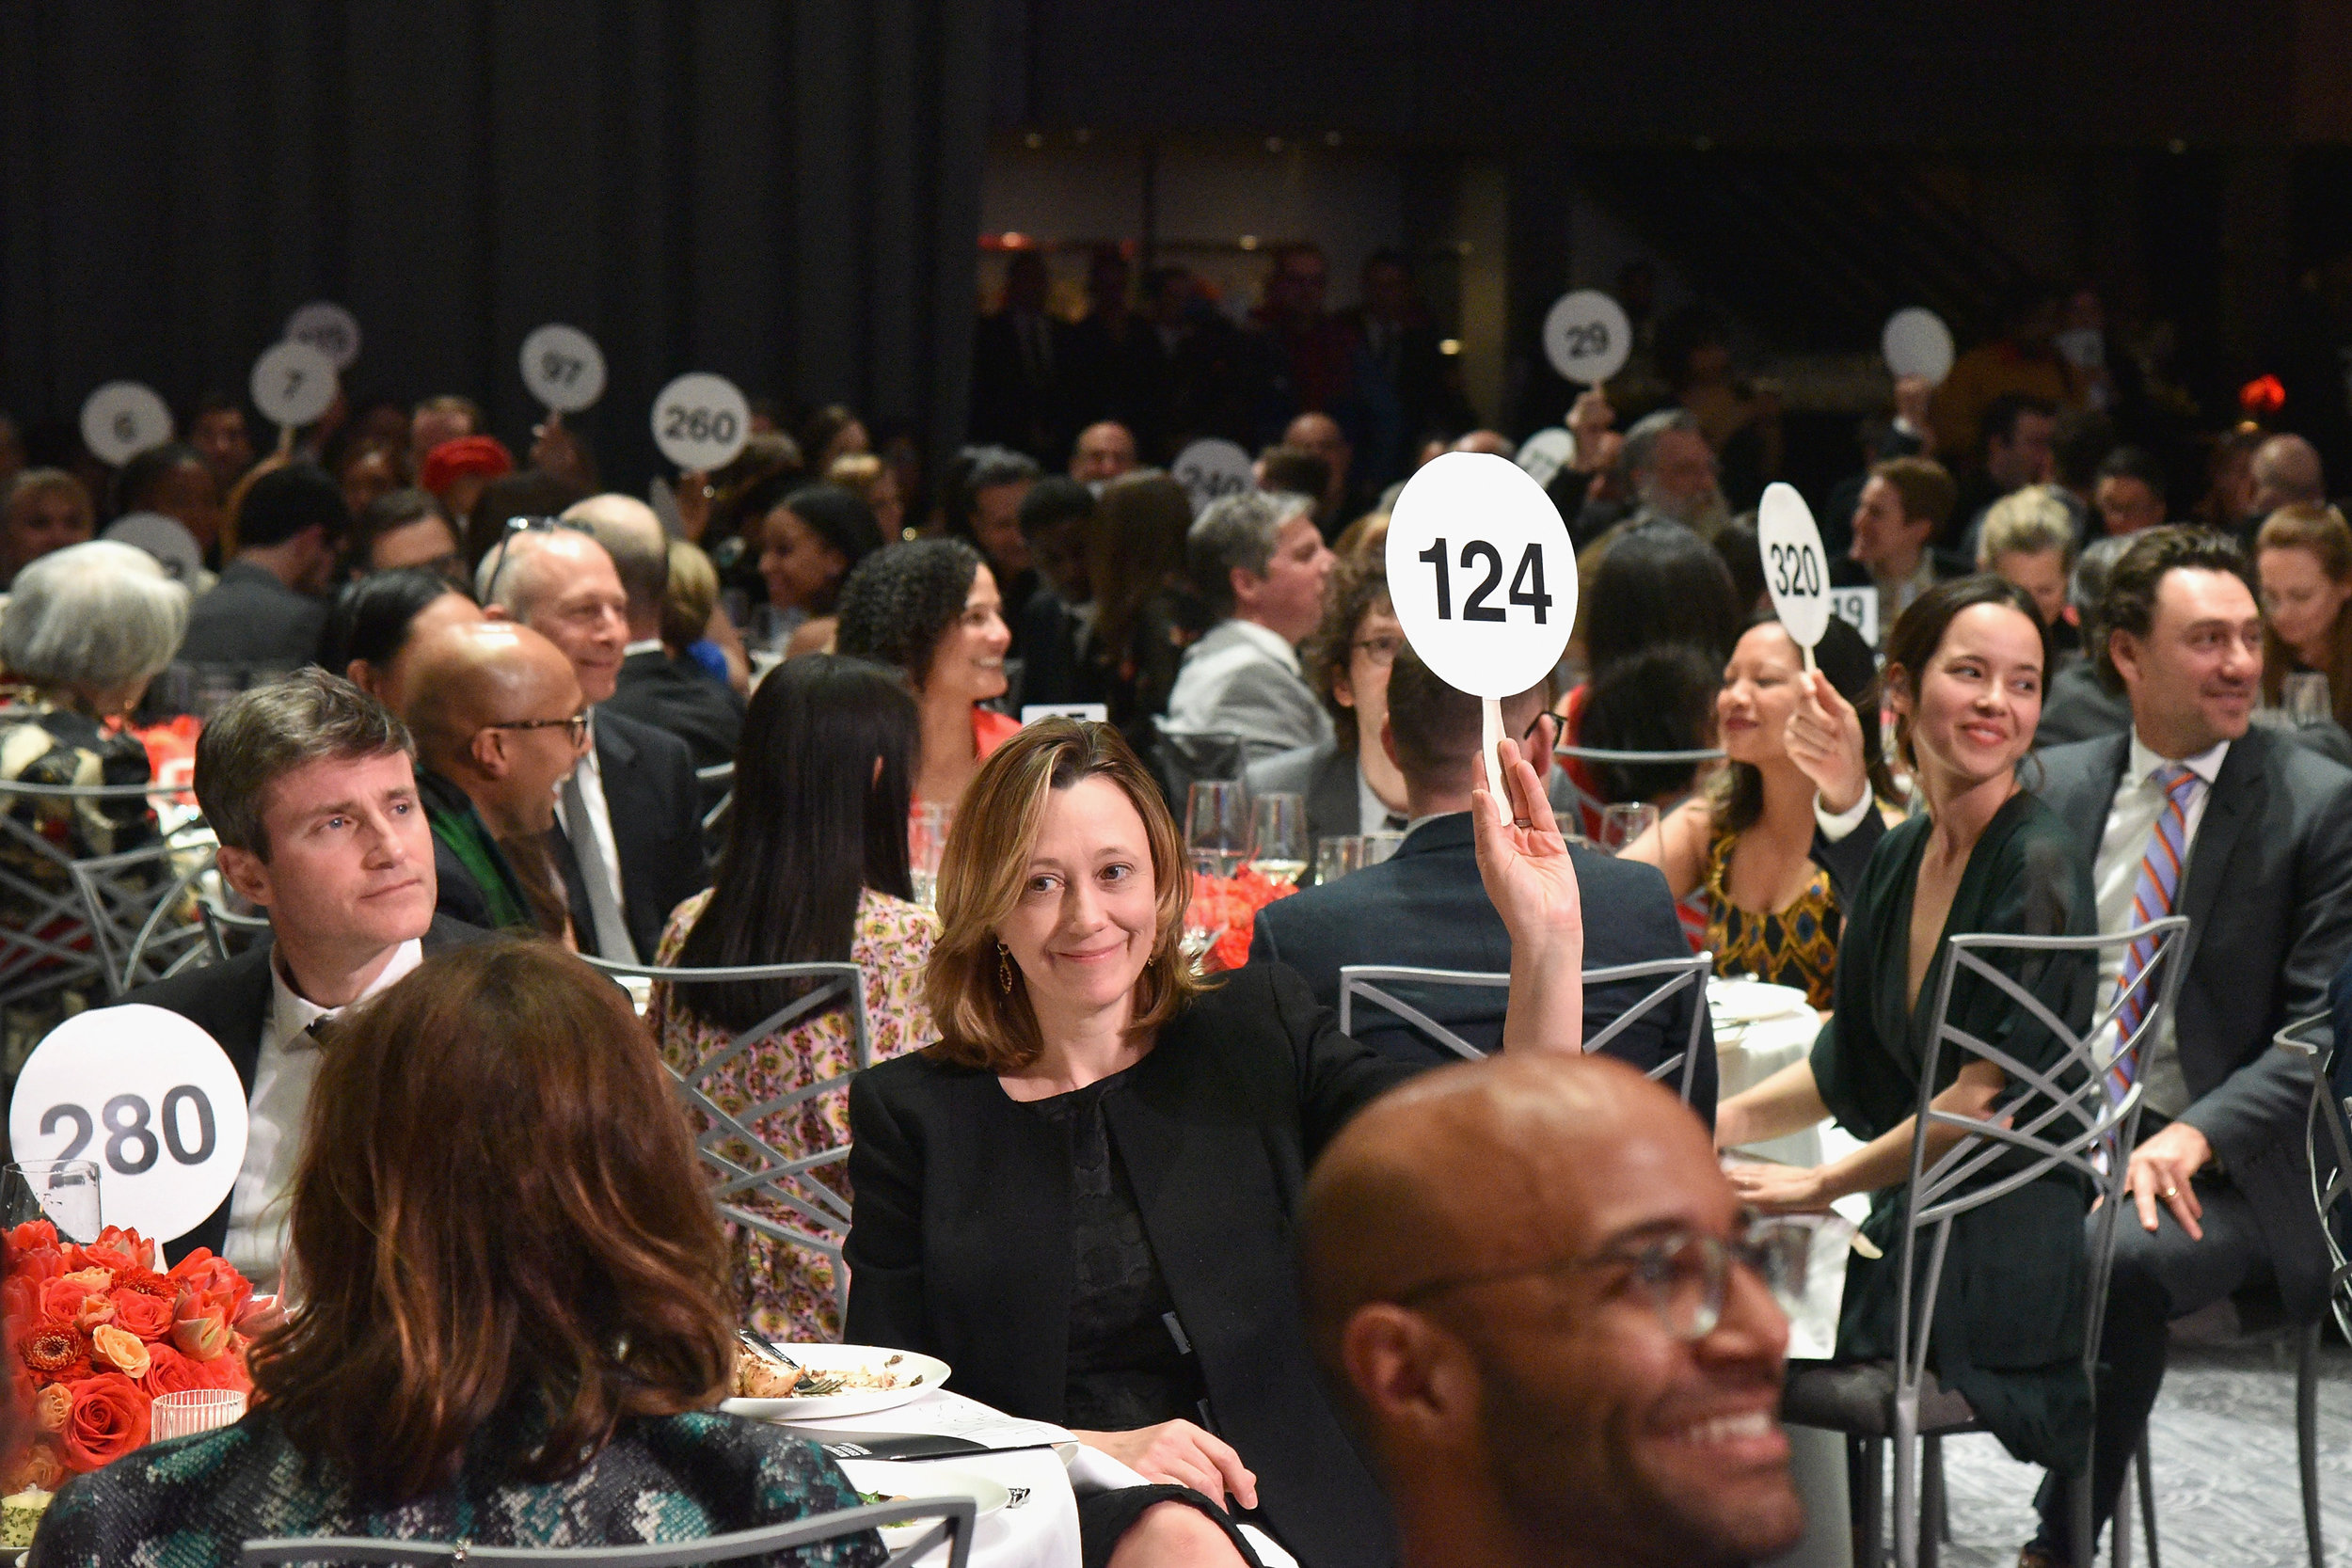 NEW YORK, NY - APRIL 02: Guests participate in fundraiser during The International Center Of Photography's 35th Annual Infinity Awards at The Ziegfeld Ballroom on April 2, 2019 in New York City. (Photo by Bryan Bedder/Getty Images for International Center of Photography)